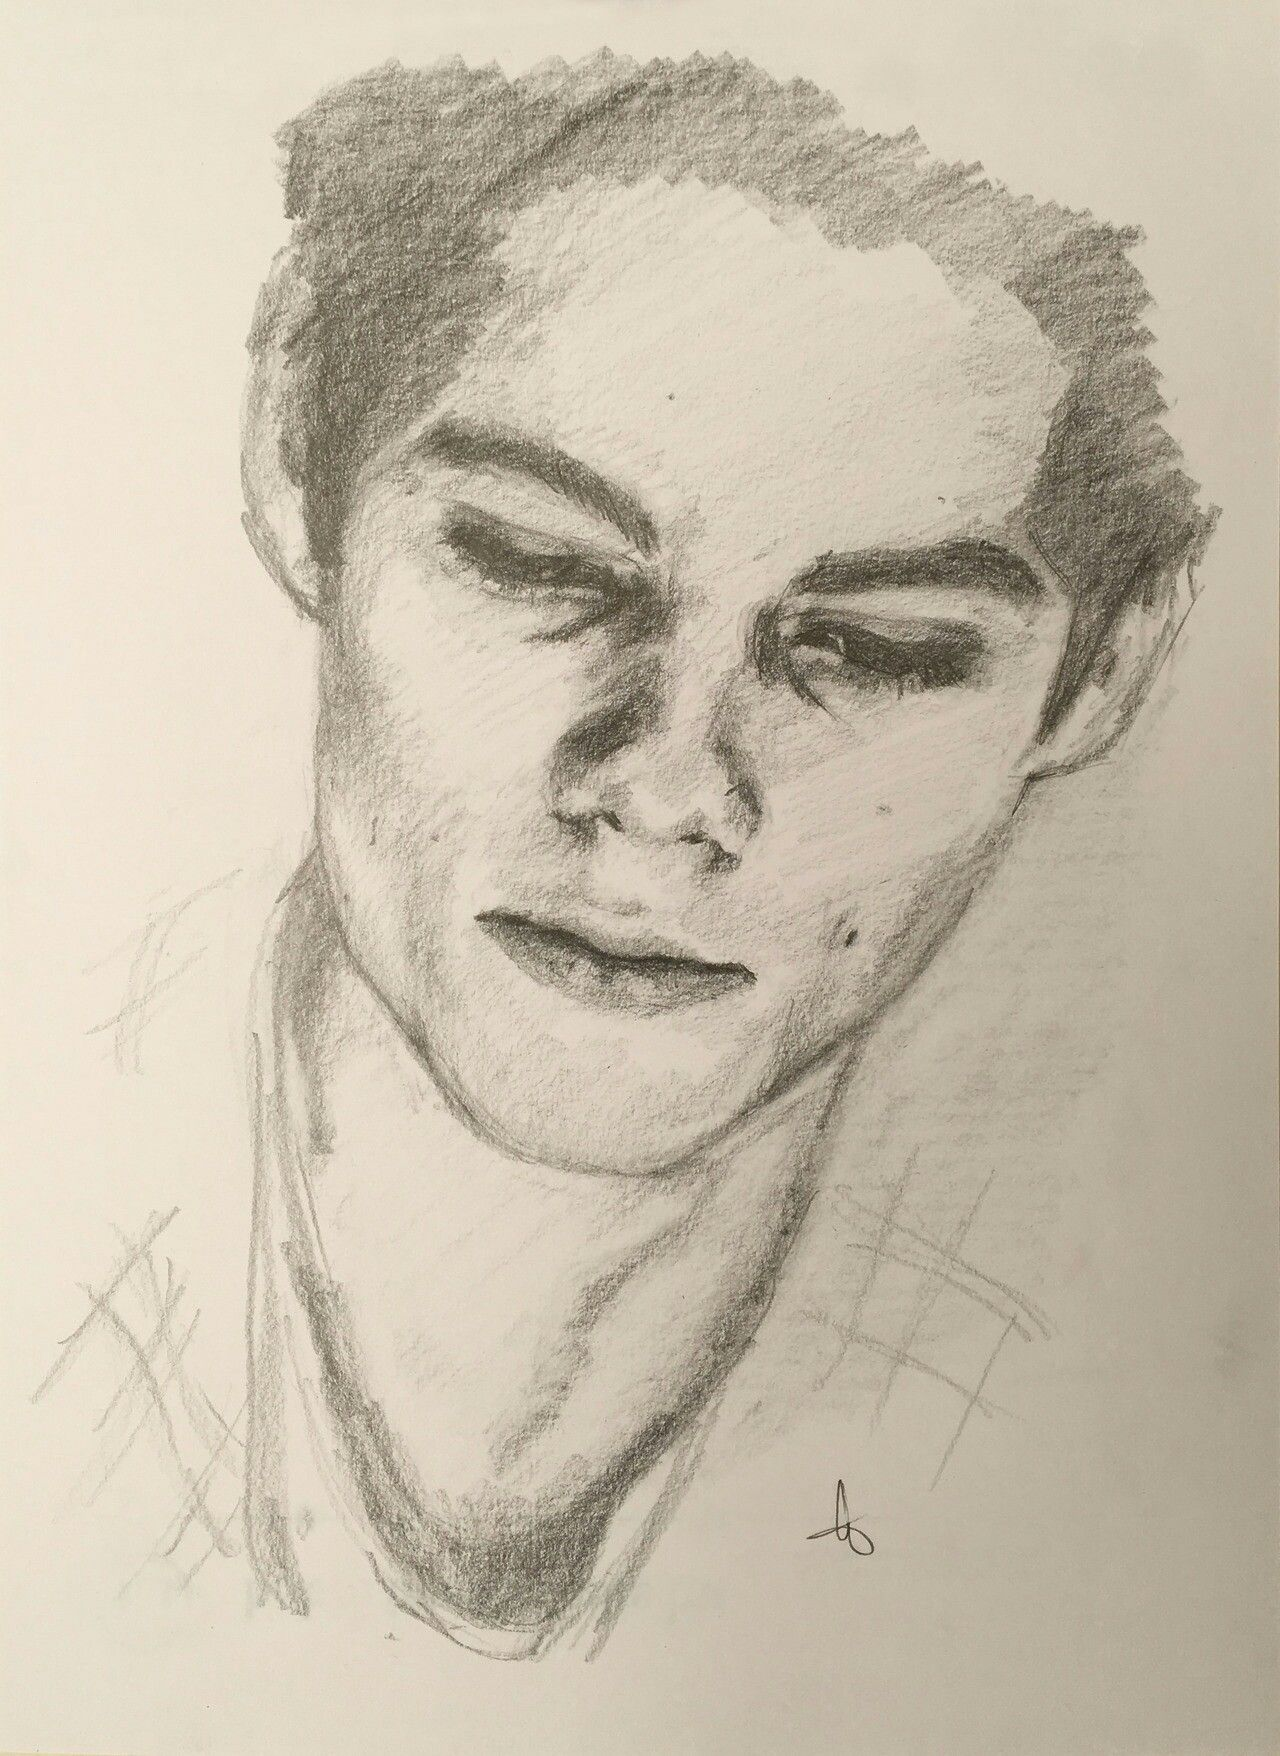 Pin On Dylan Obrien